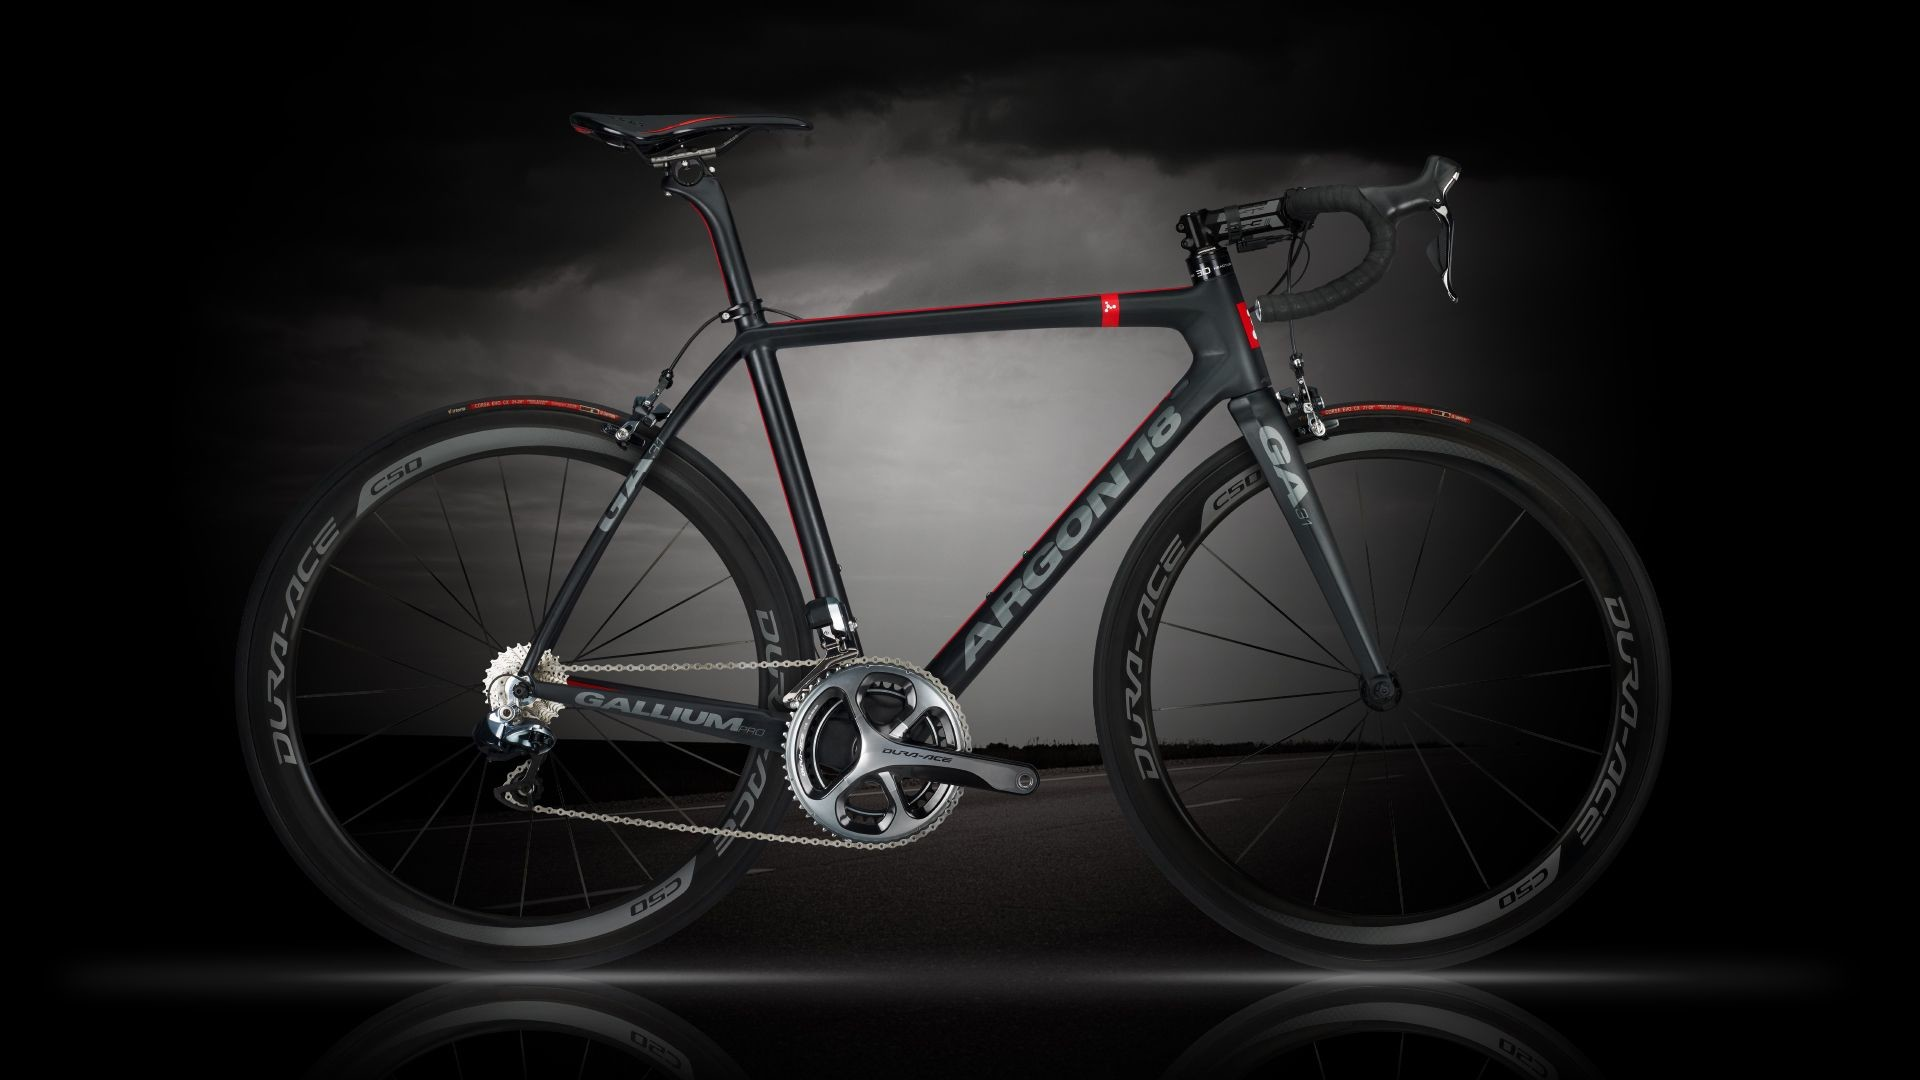 Res: 1920x1080, Road Bikes Wallpapers : Get Free top quality Road Bikes Wallpapers for your  desktop PC background